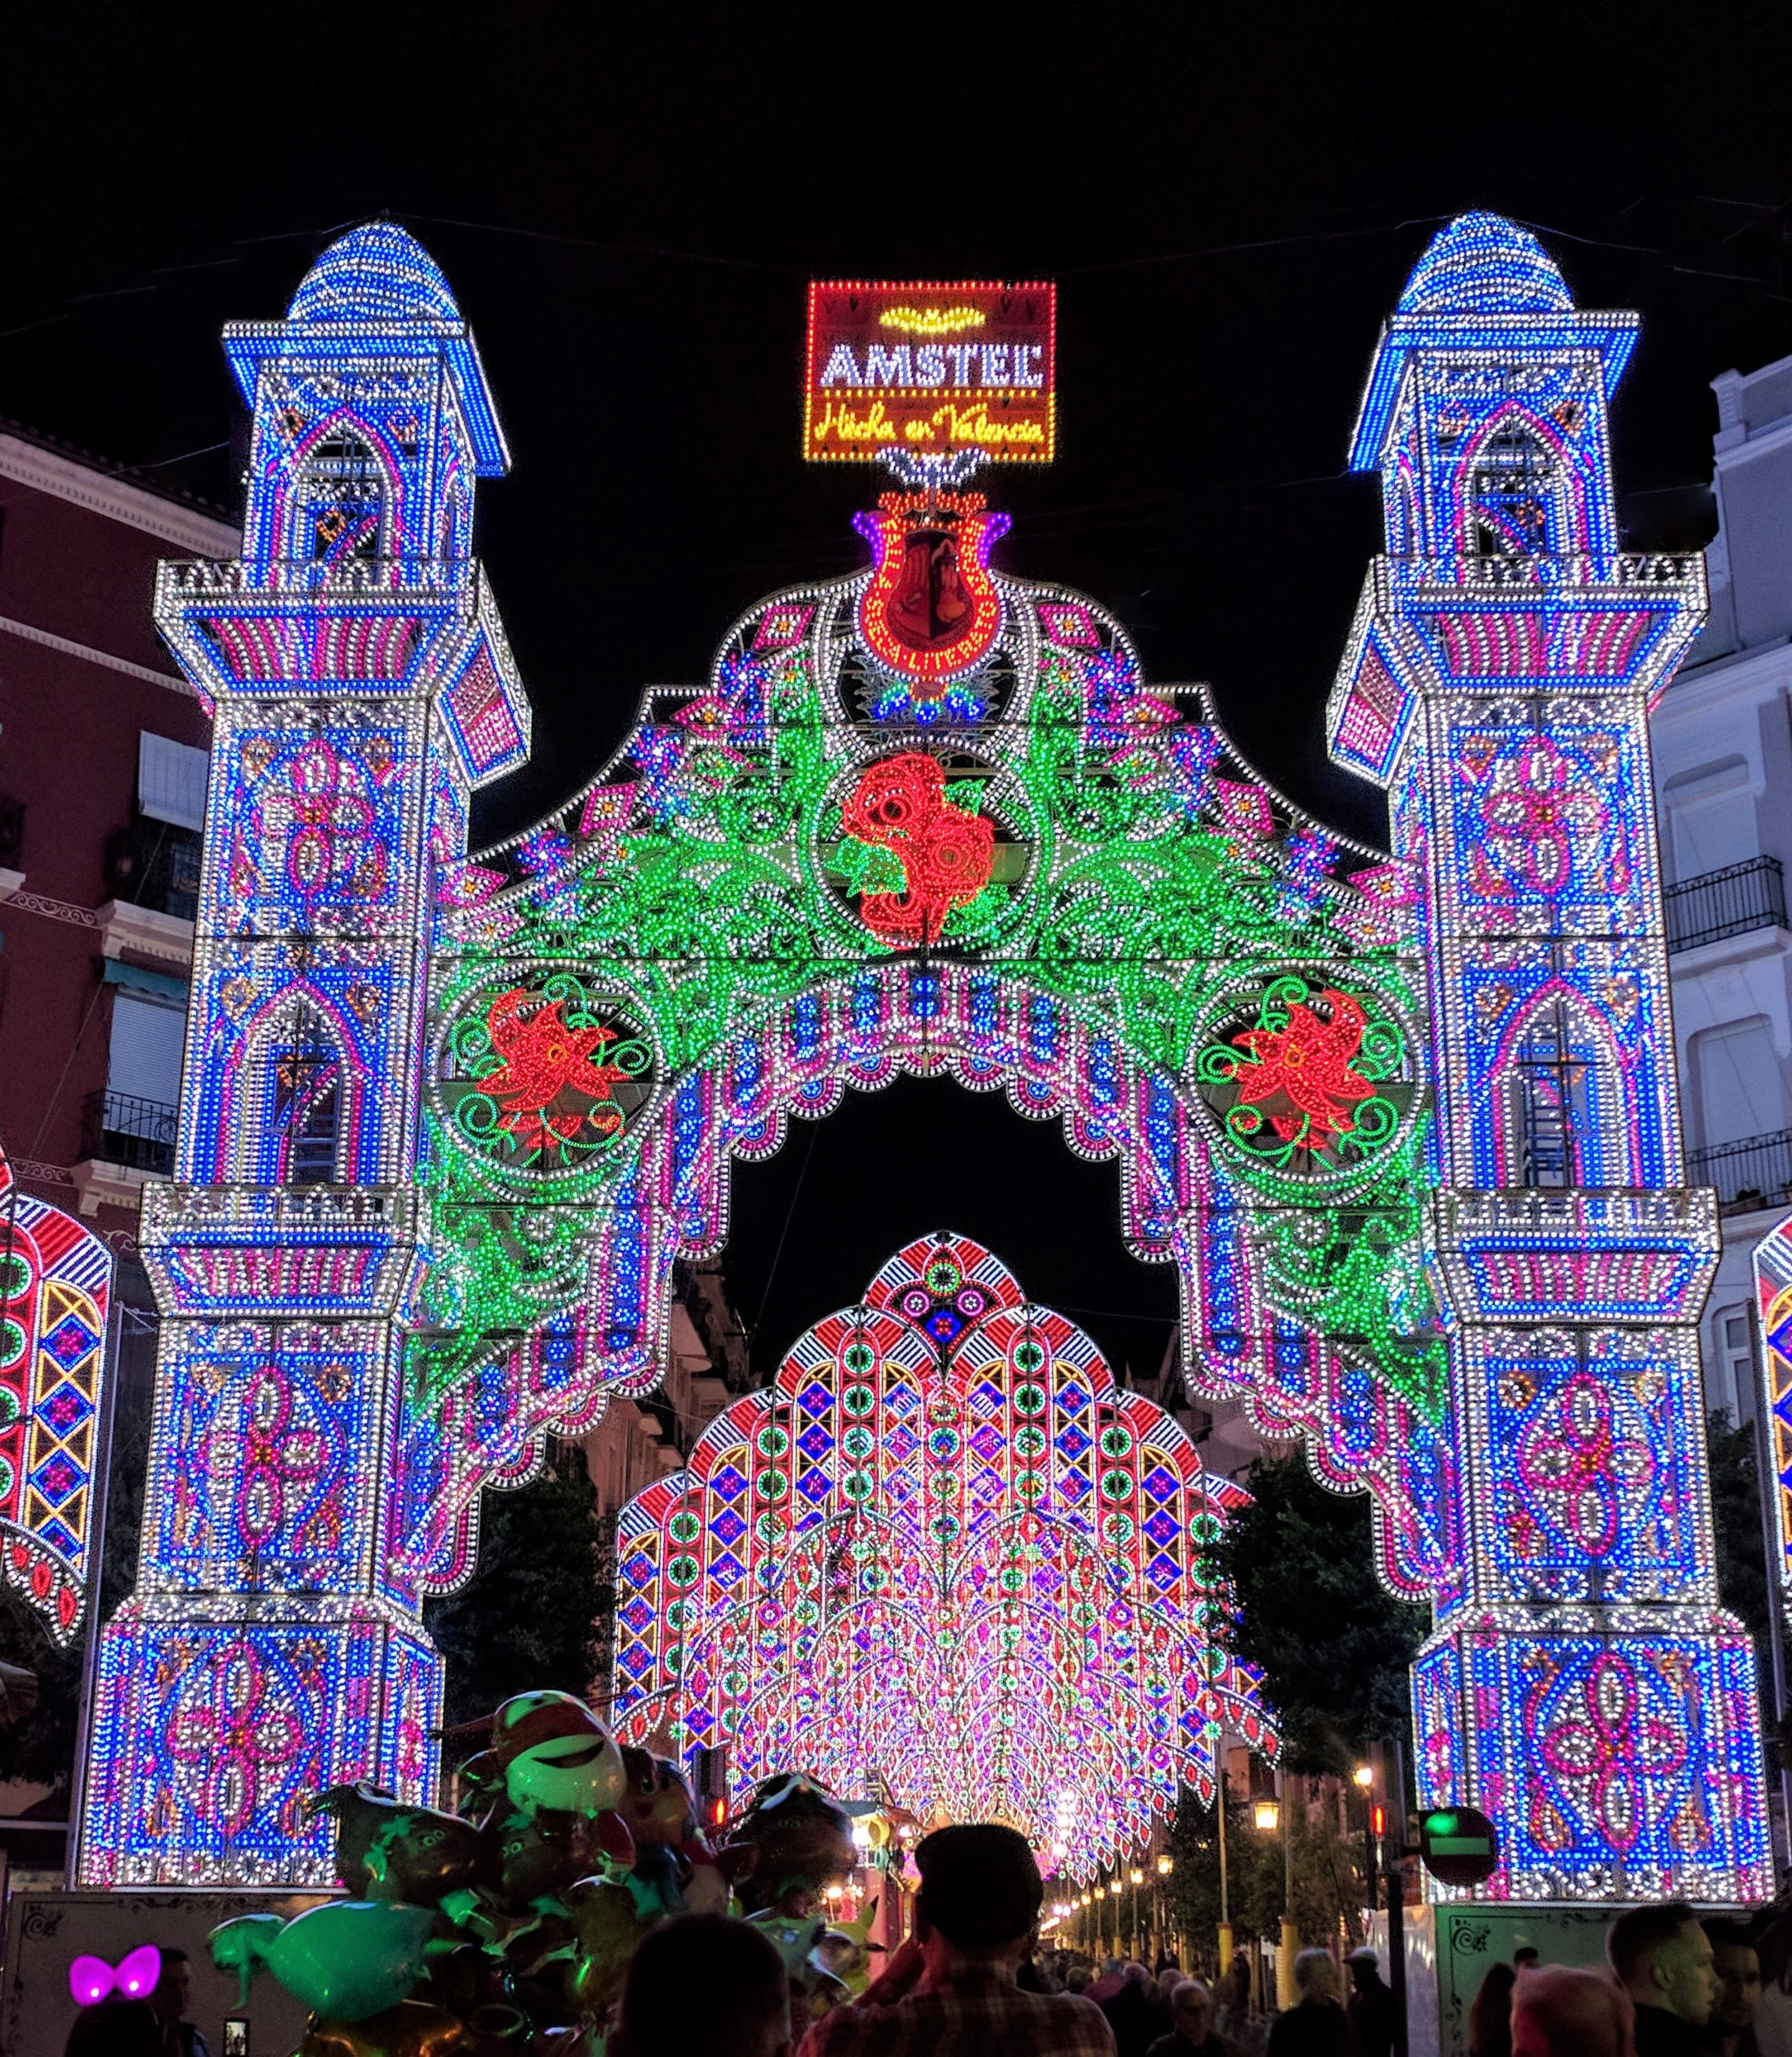 The light displays were all over the city. This was one of the most spectacular.